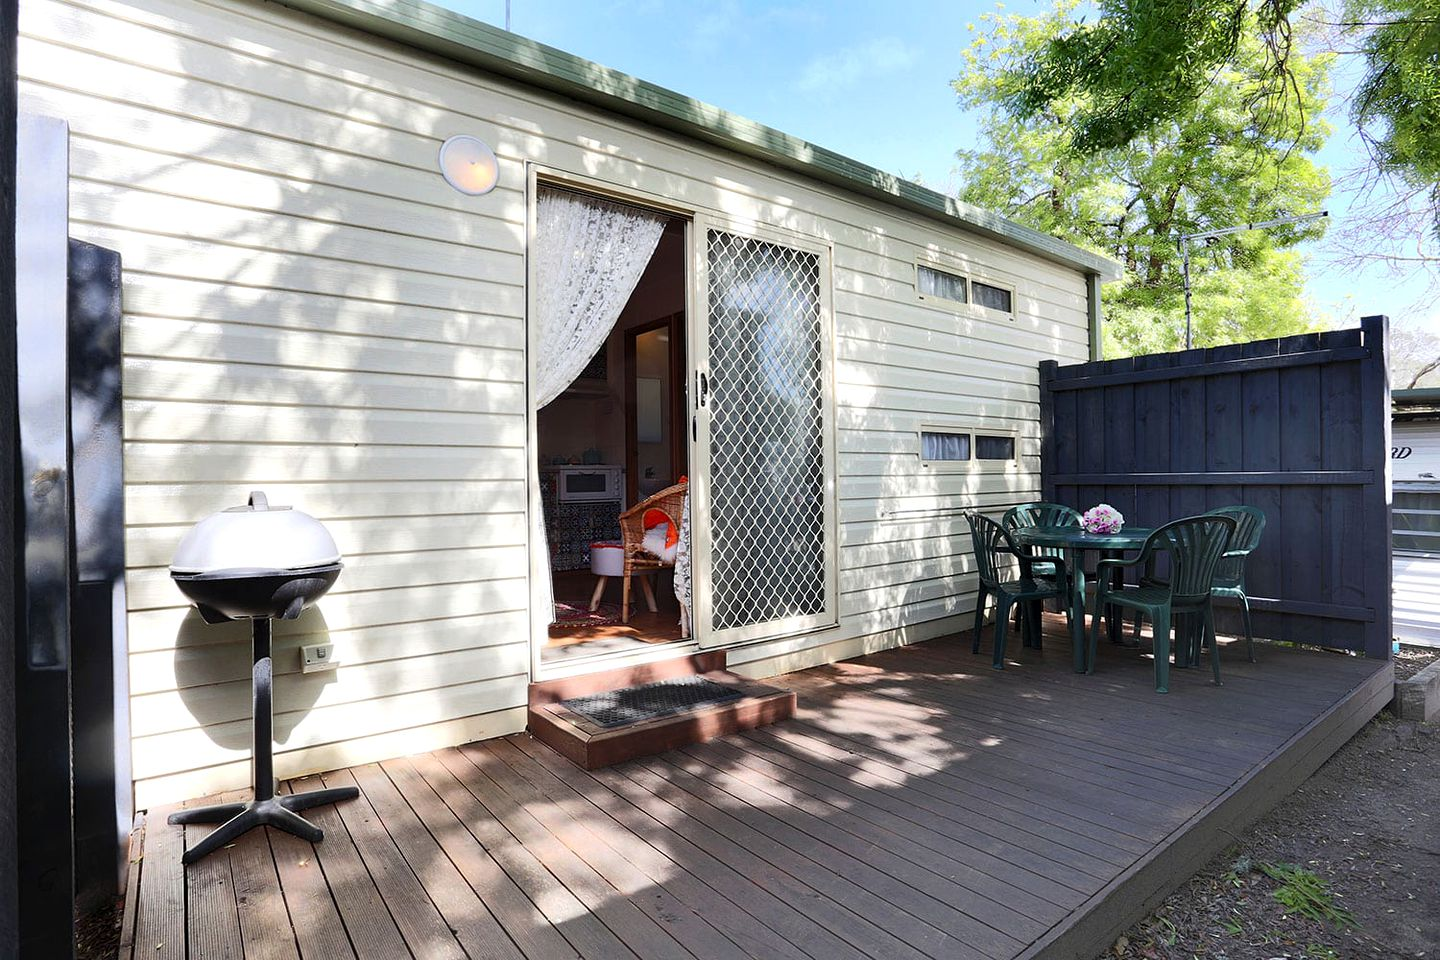 This lovely Mornington Peninsula holiday rental, with its private deck and barbecue, is great for weekend getaways from Melbourne!